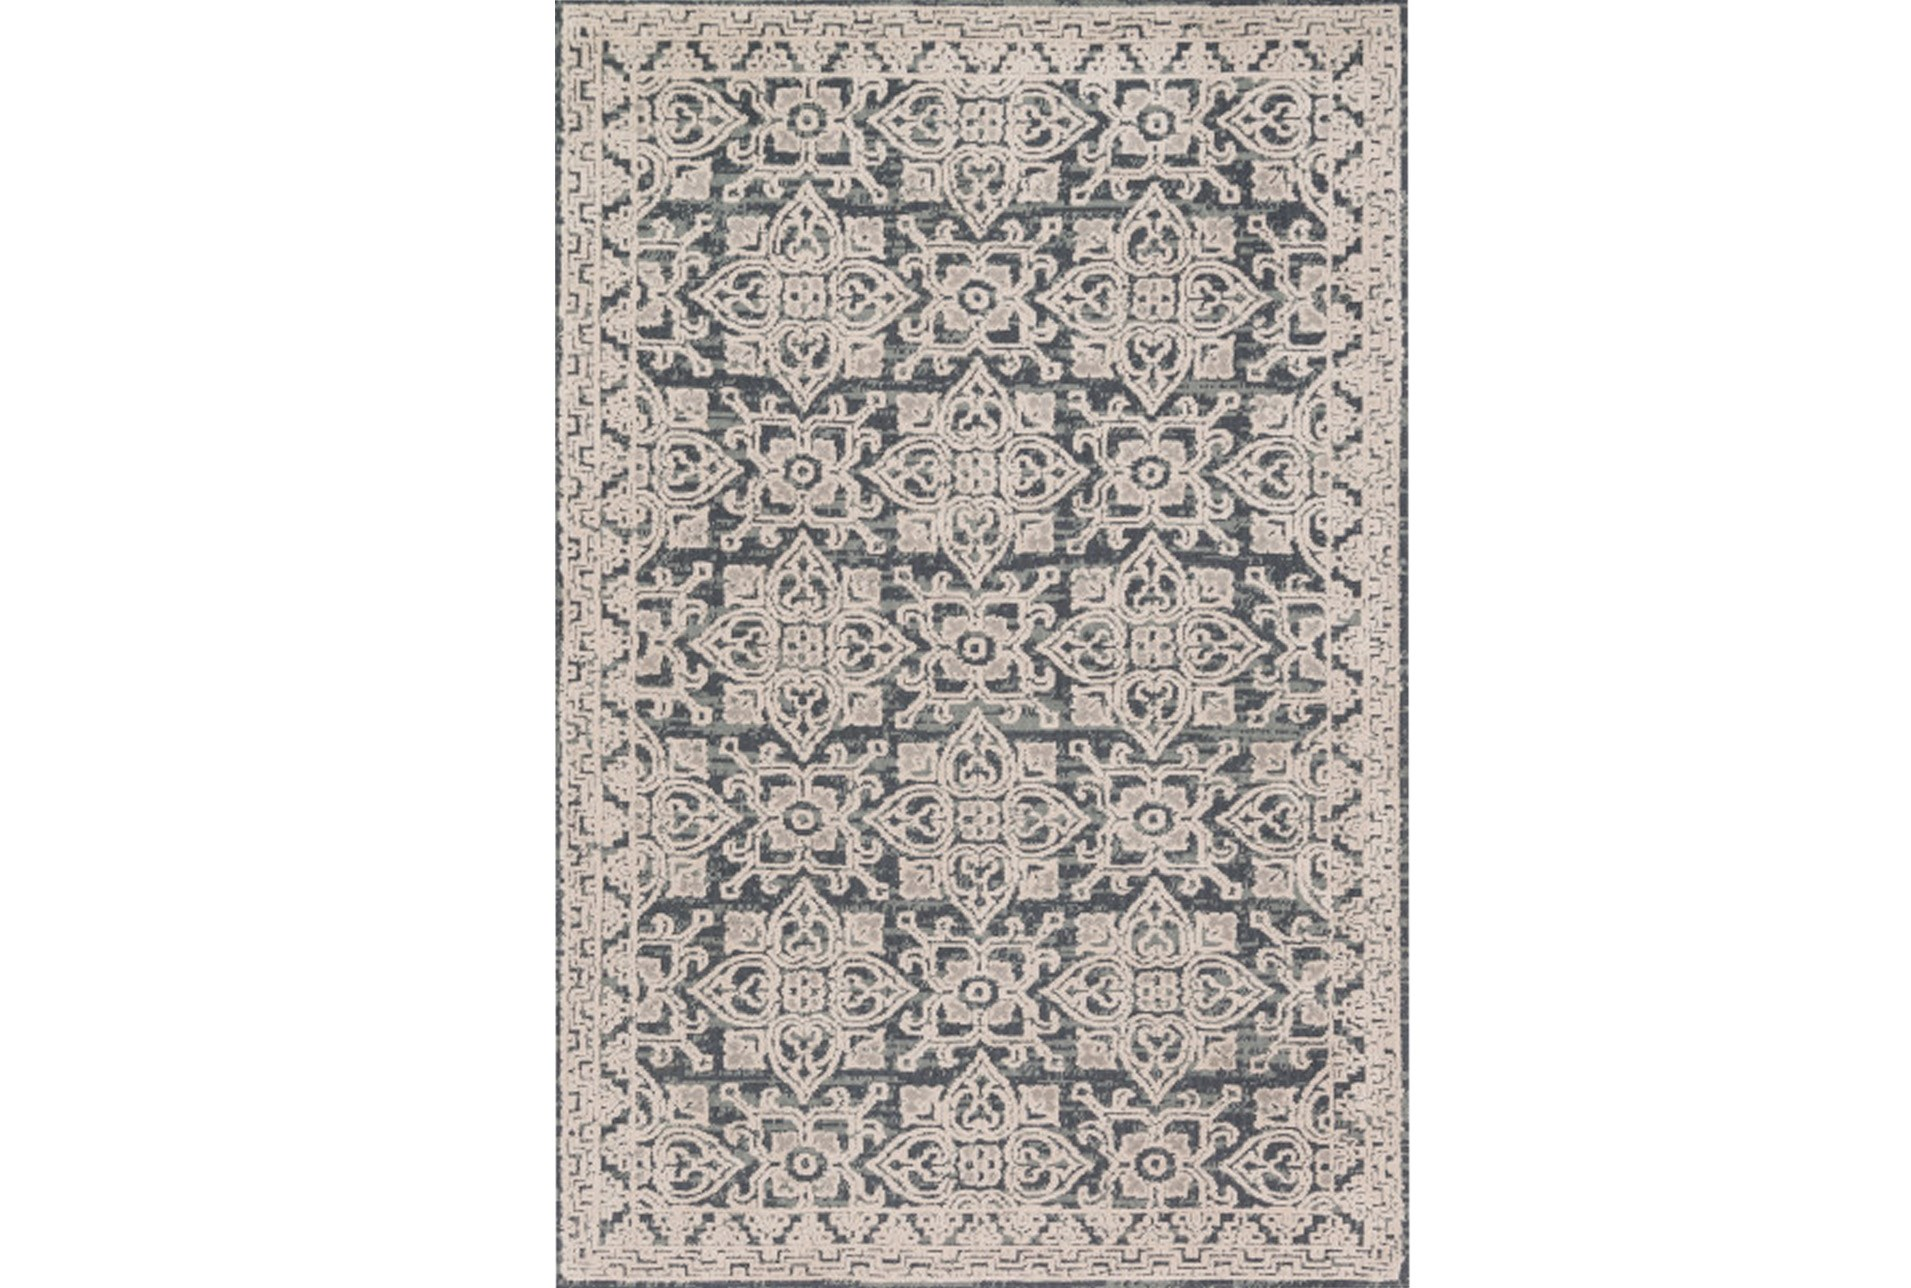 93x117 Rug Magnolia Home Lotus Fog Beige By Joanna Gaines Living